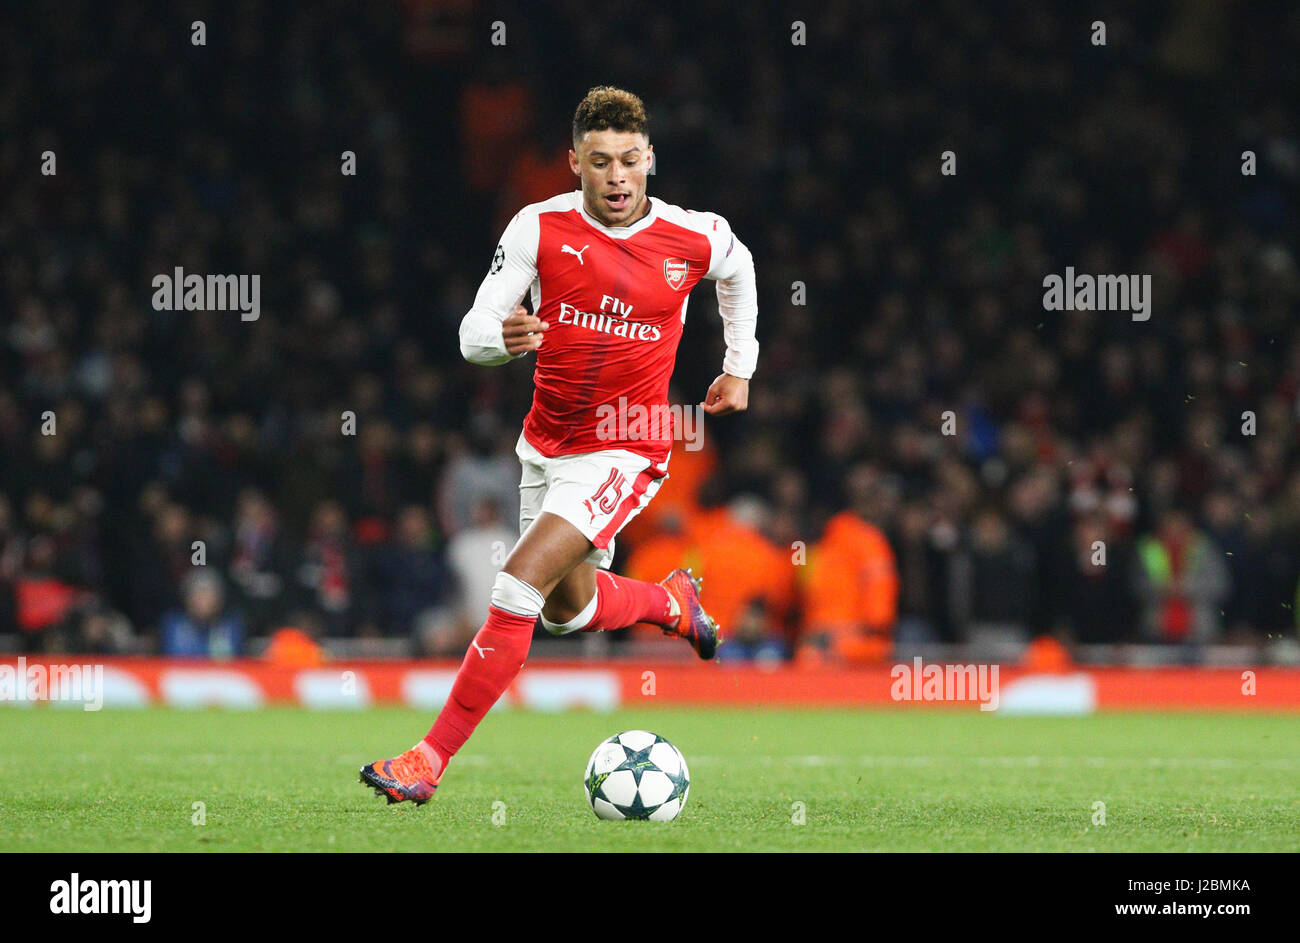 Alex Oxlade Chamberlain of Arsenal during the UEFA Champions